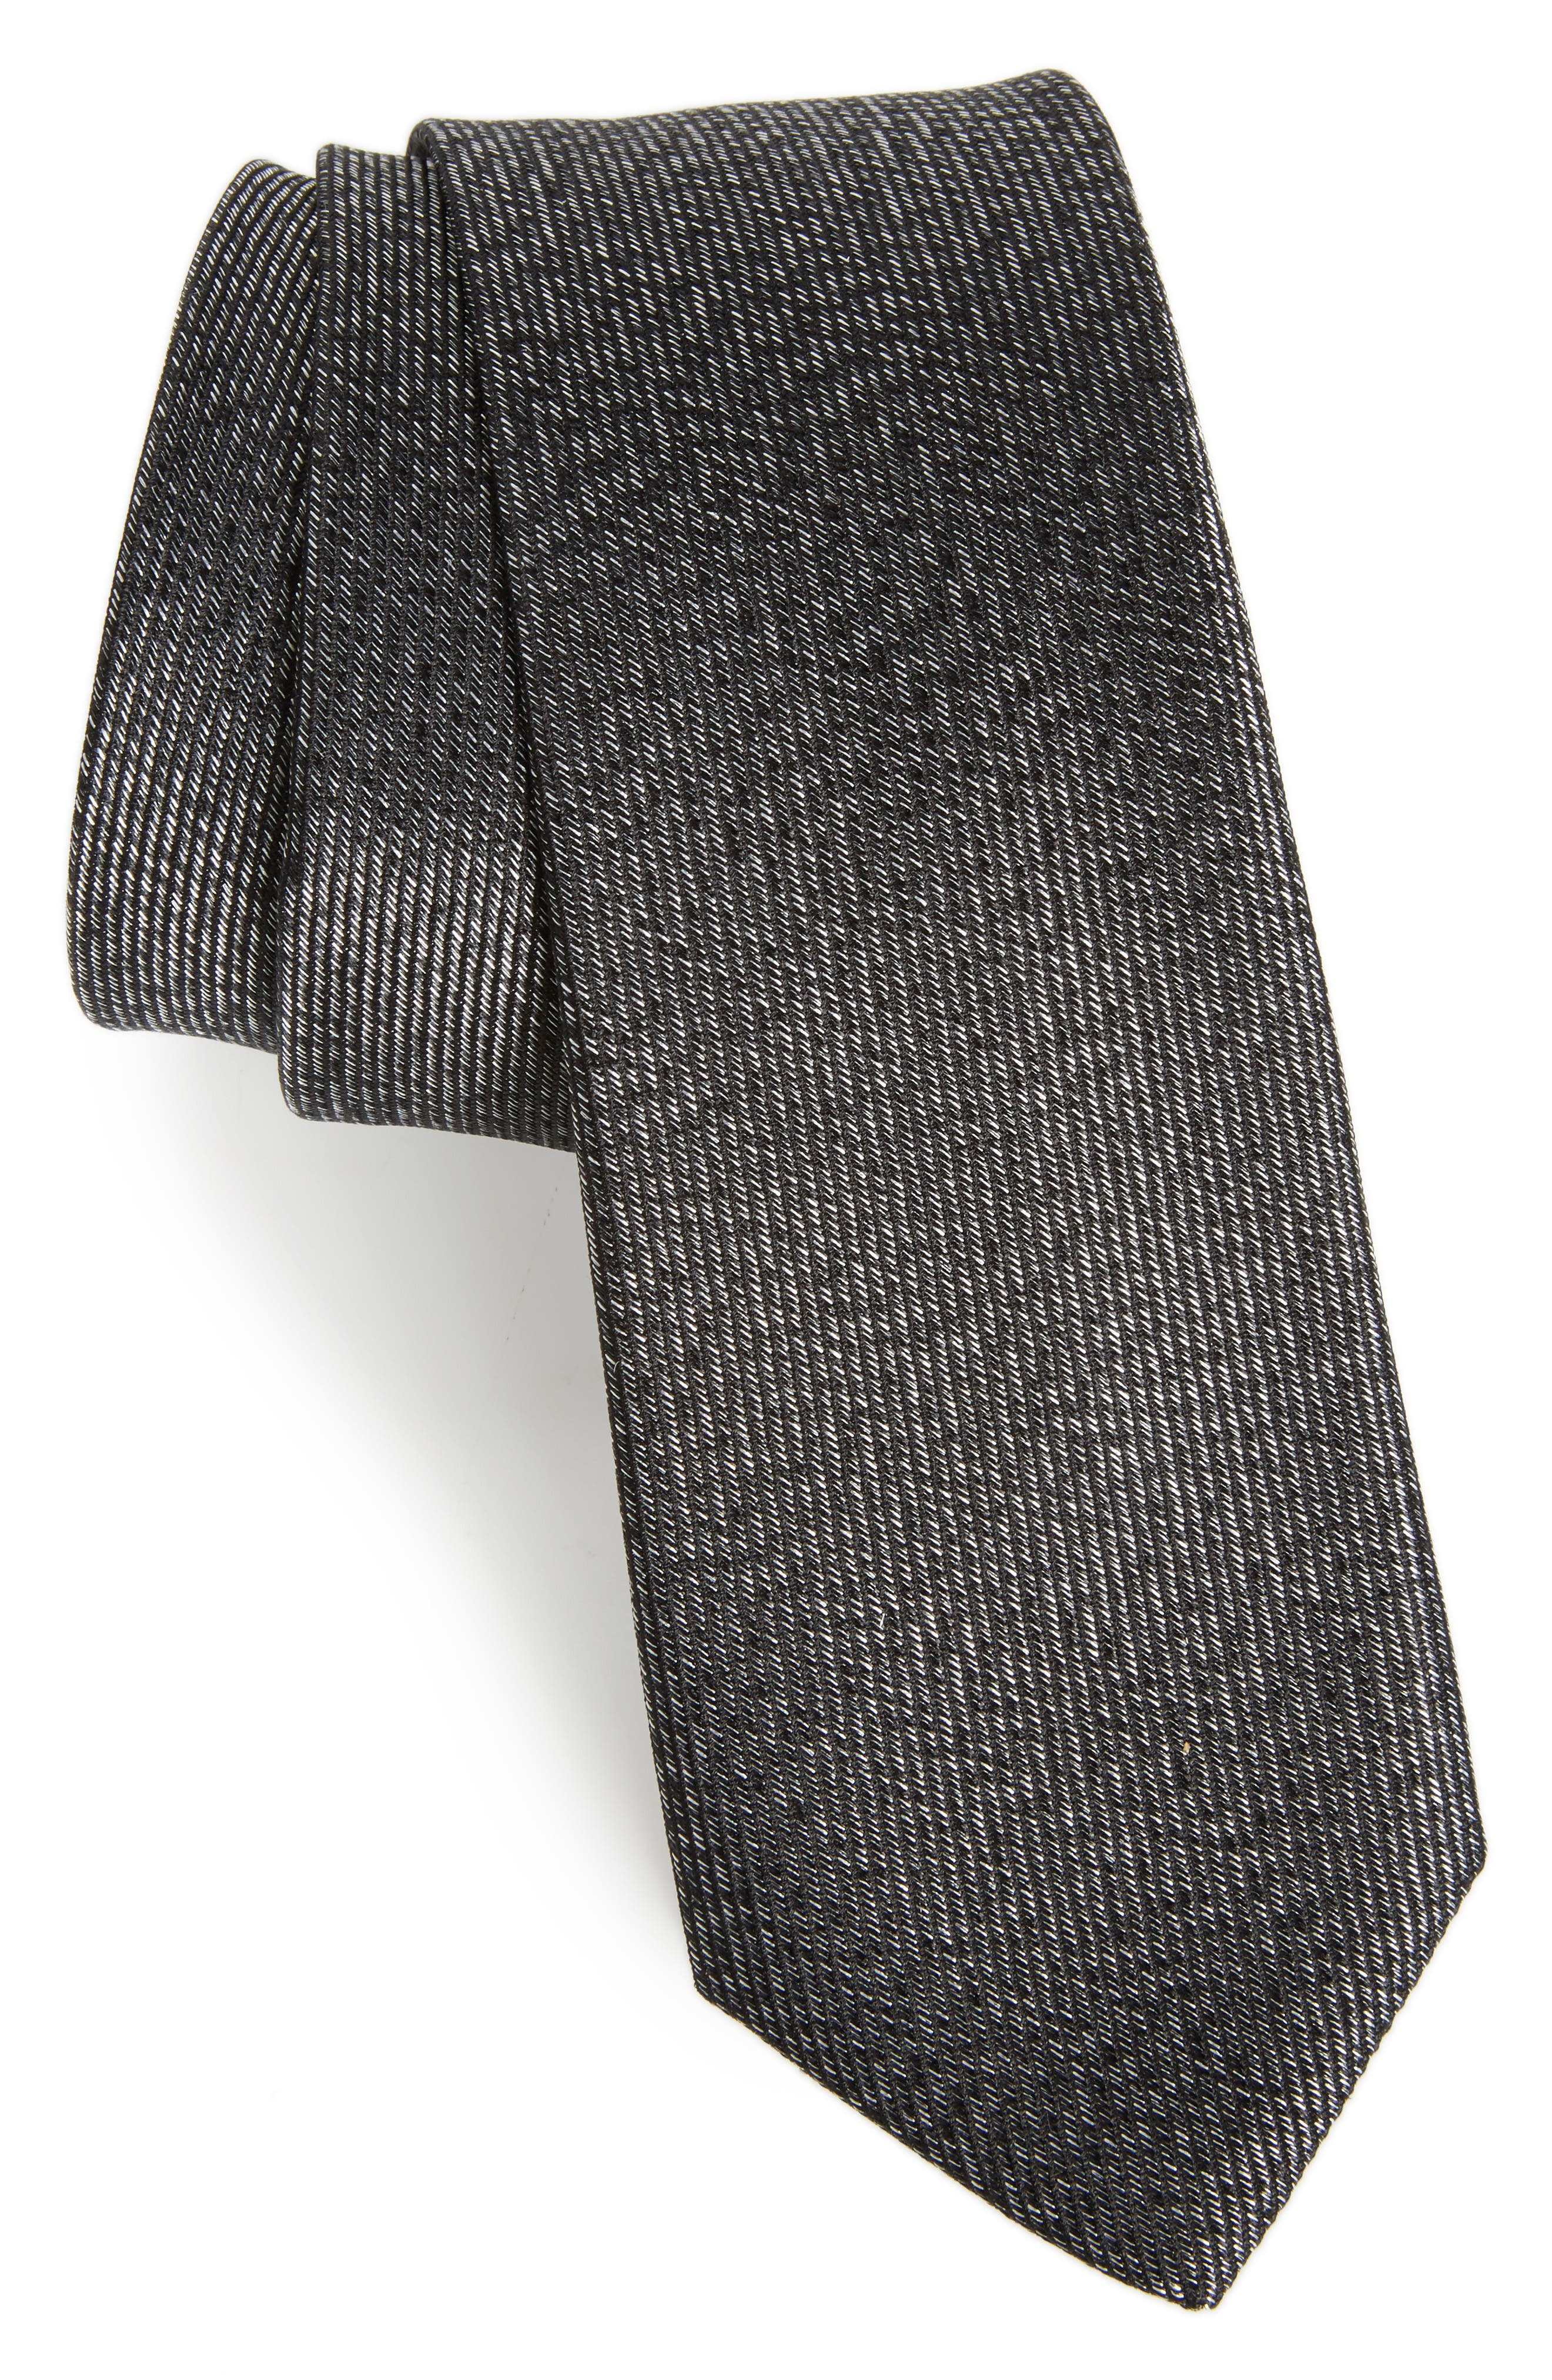 Alternate Image 1 Selected - Calibrate Heathered Solid Silk Tie